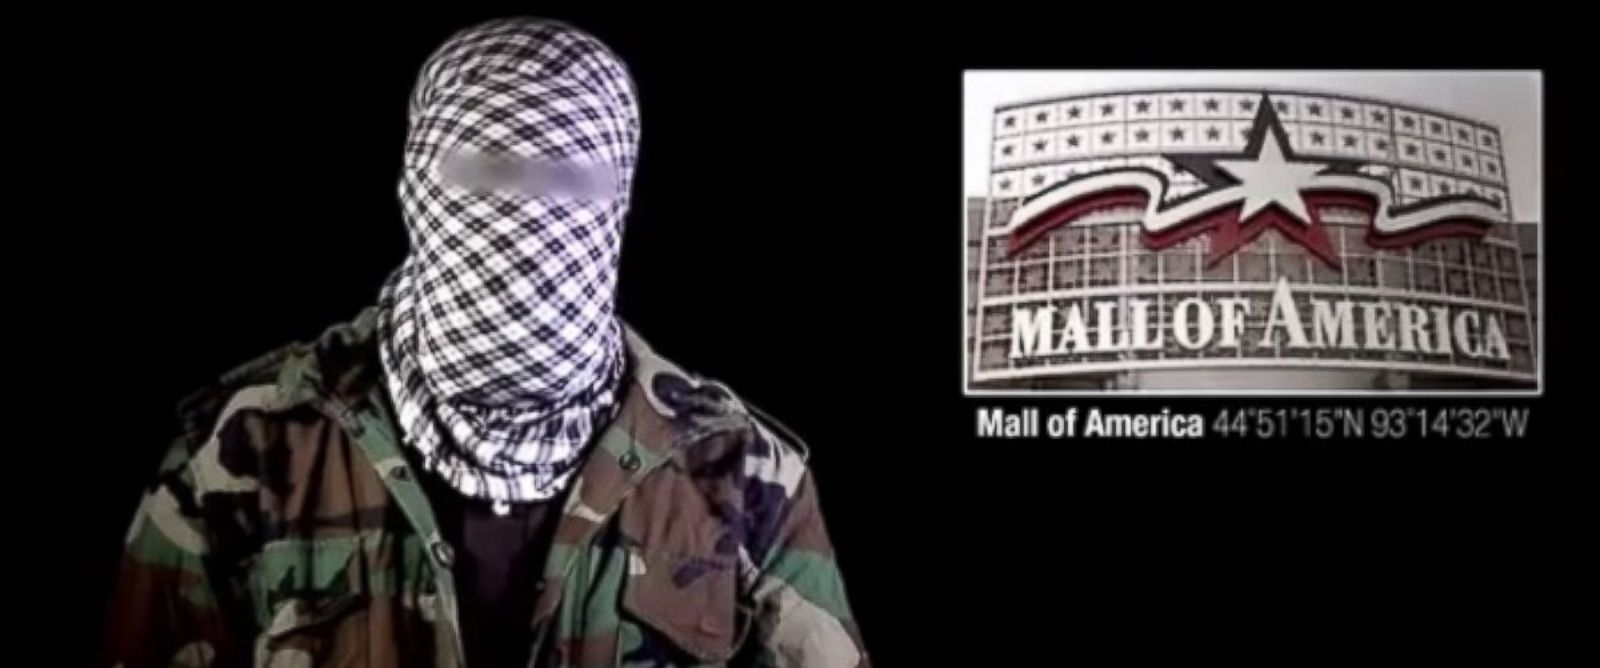 PHOTO: Militant group al-Shabab threatened the Mall of America in a video posted online.